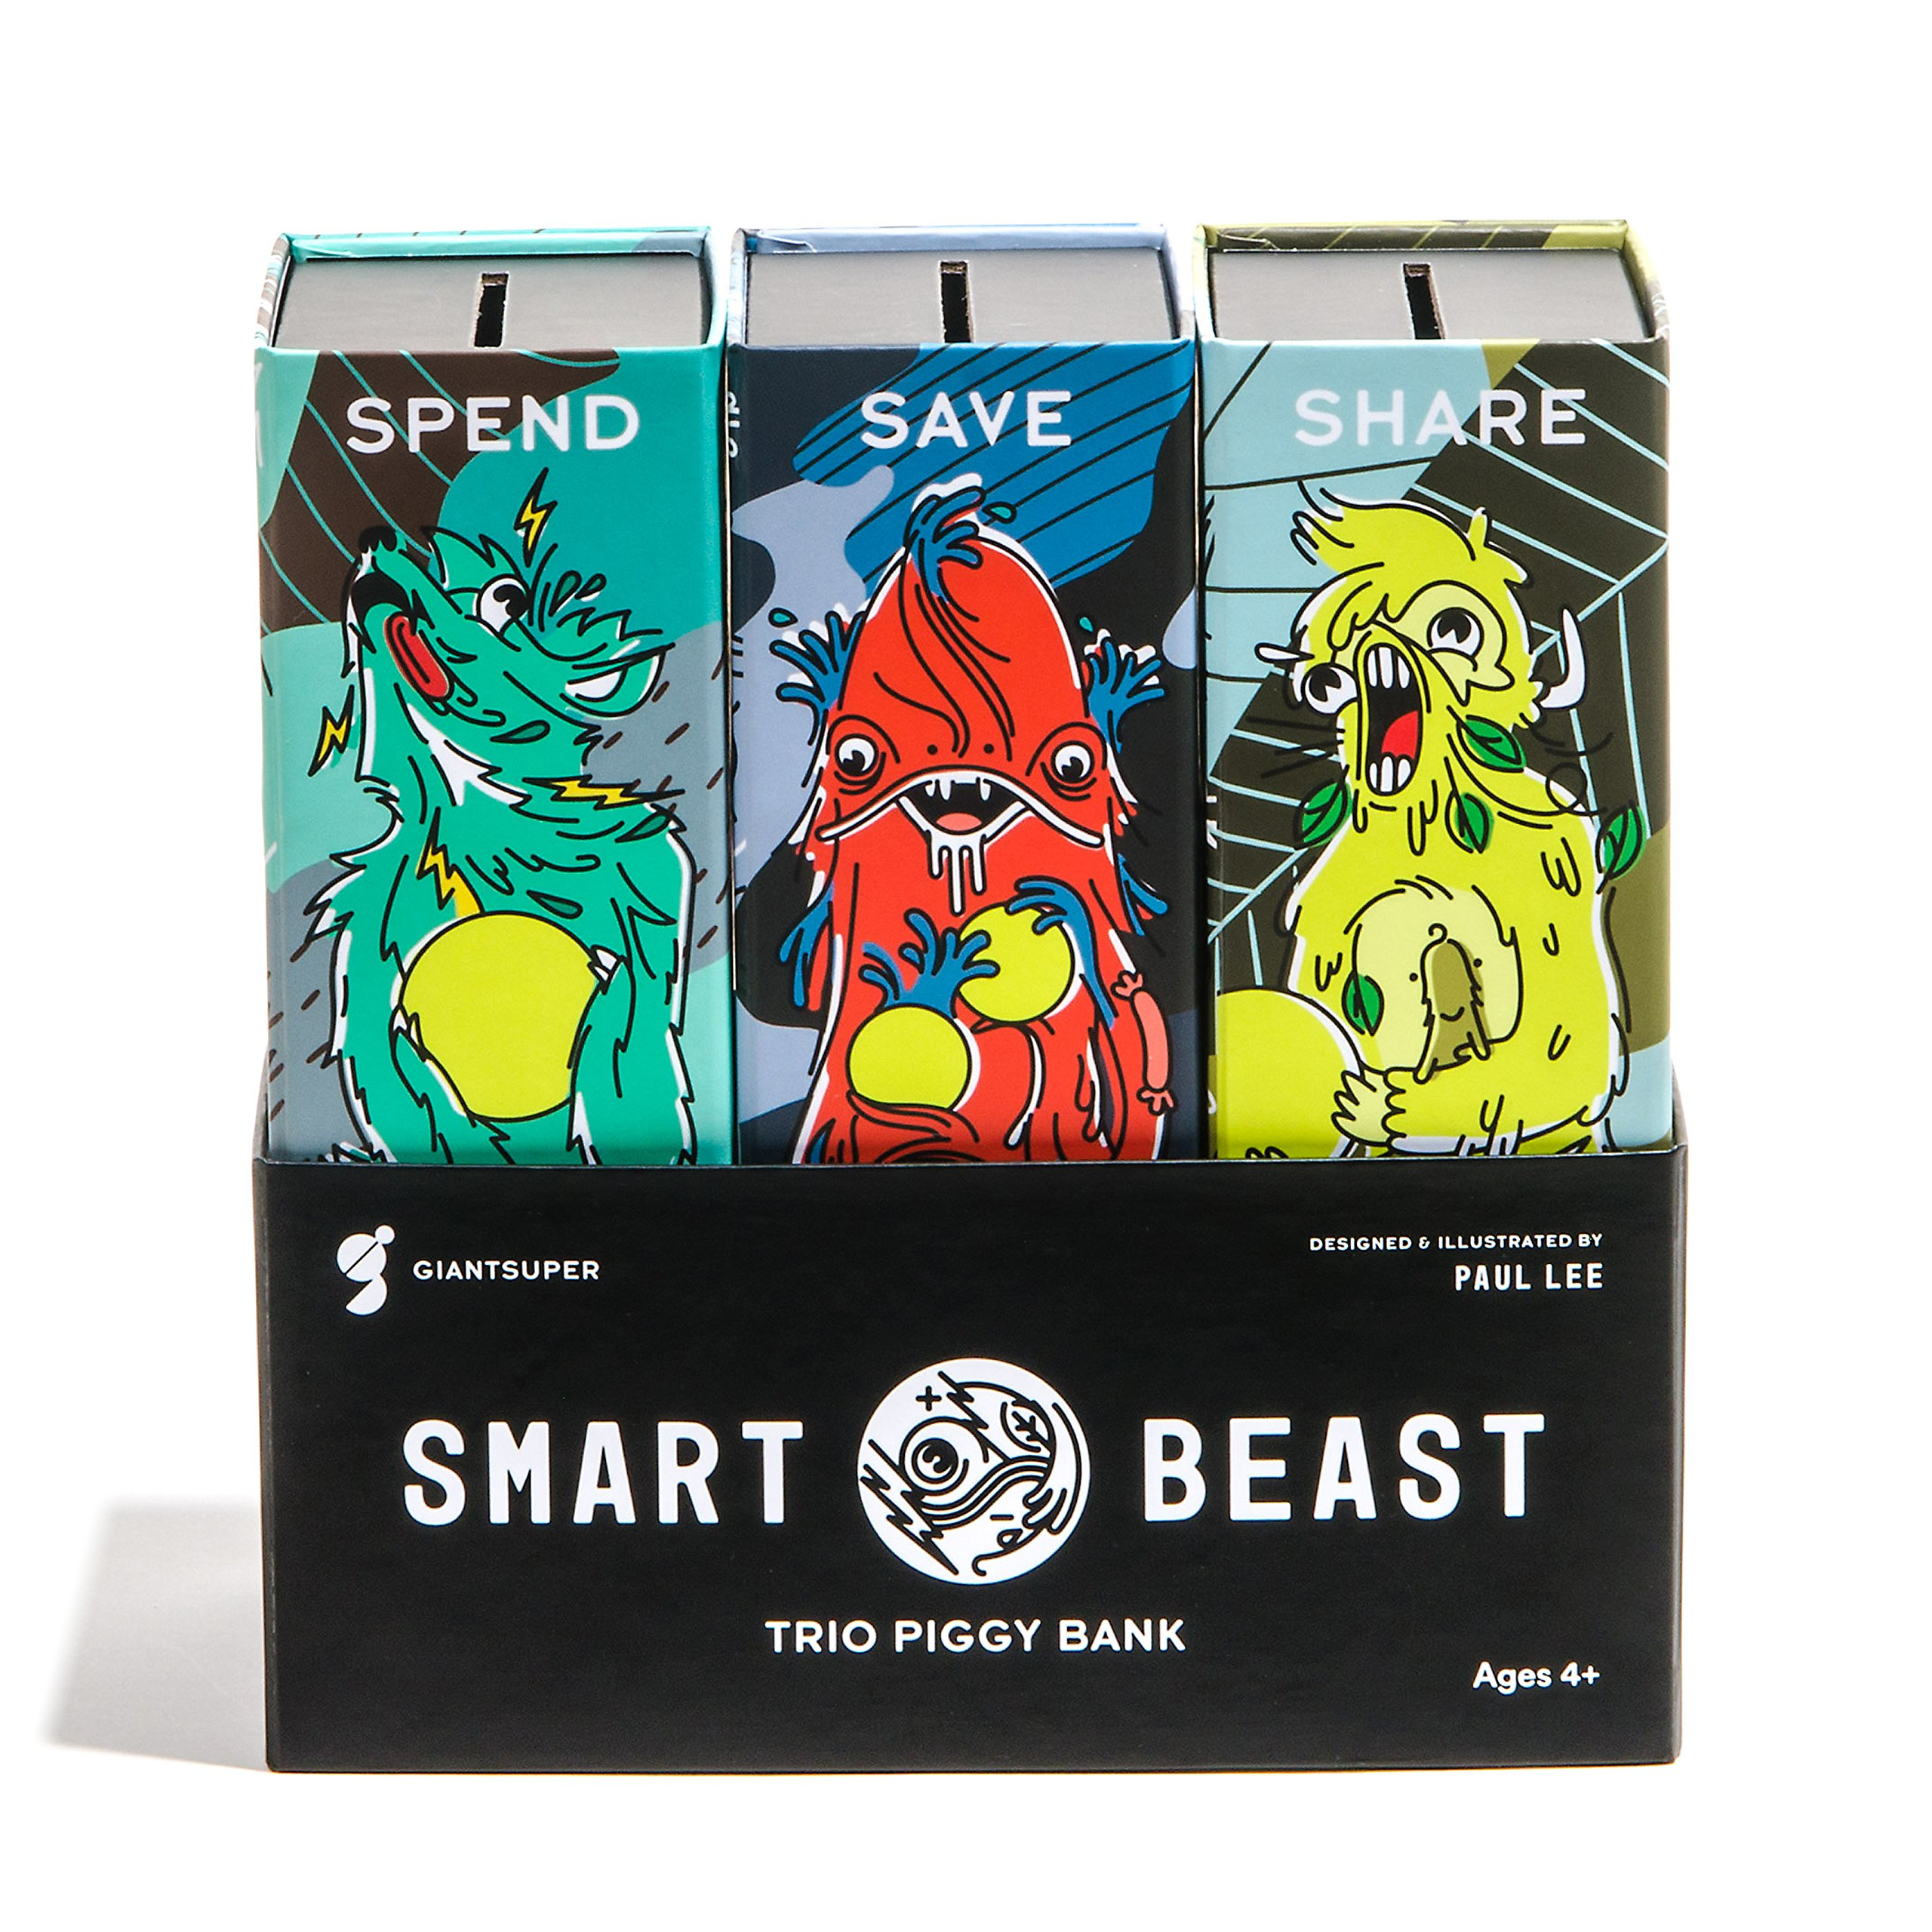 Giantsuper Smart Beast Trio Piggy Bank: 3-in-1 Money-wise Educational Piggy Bank …